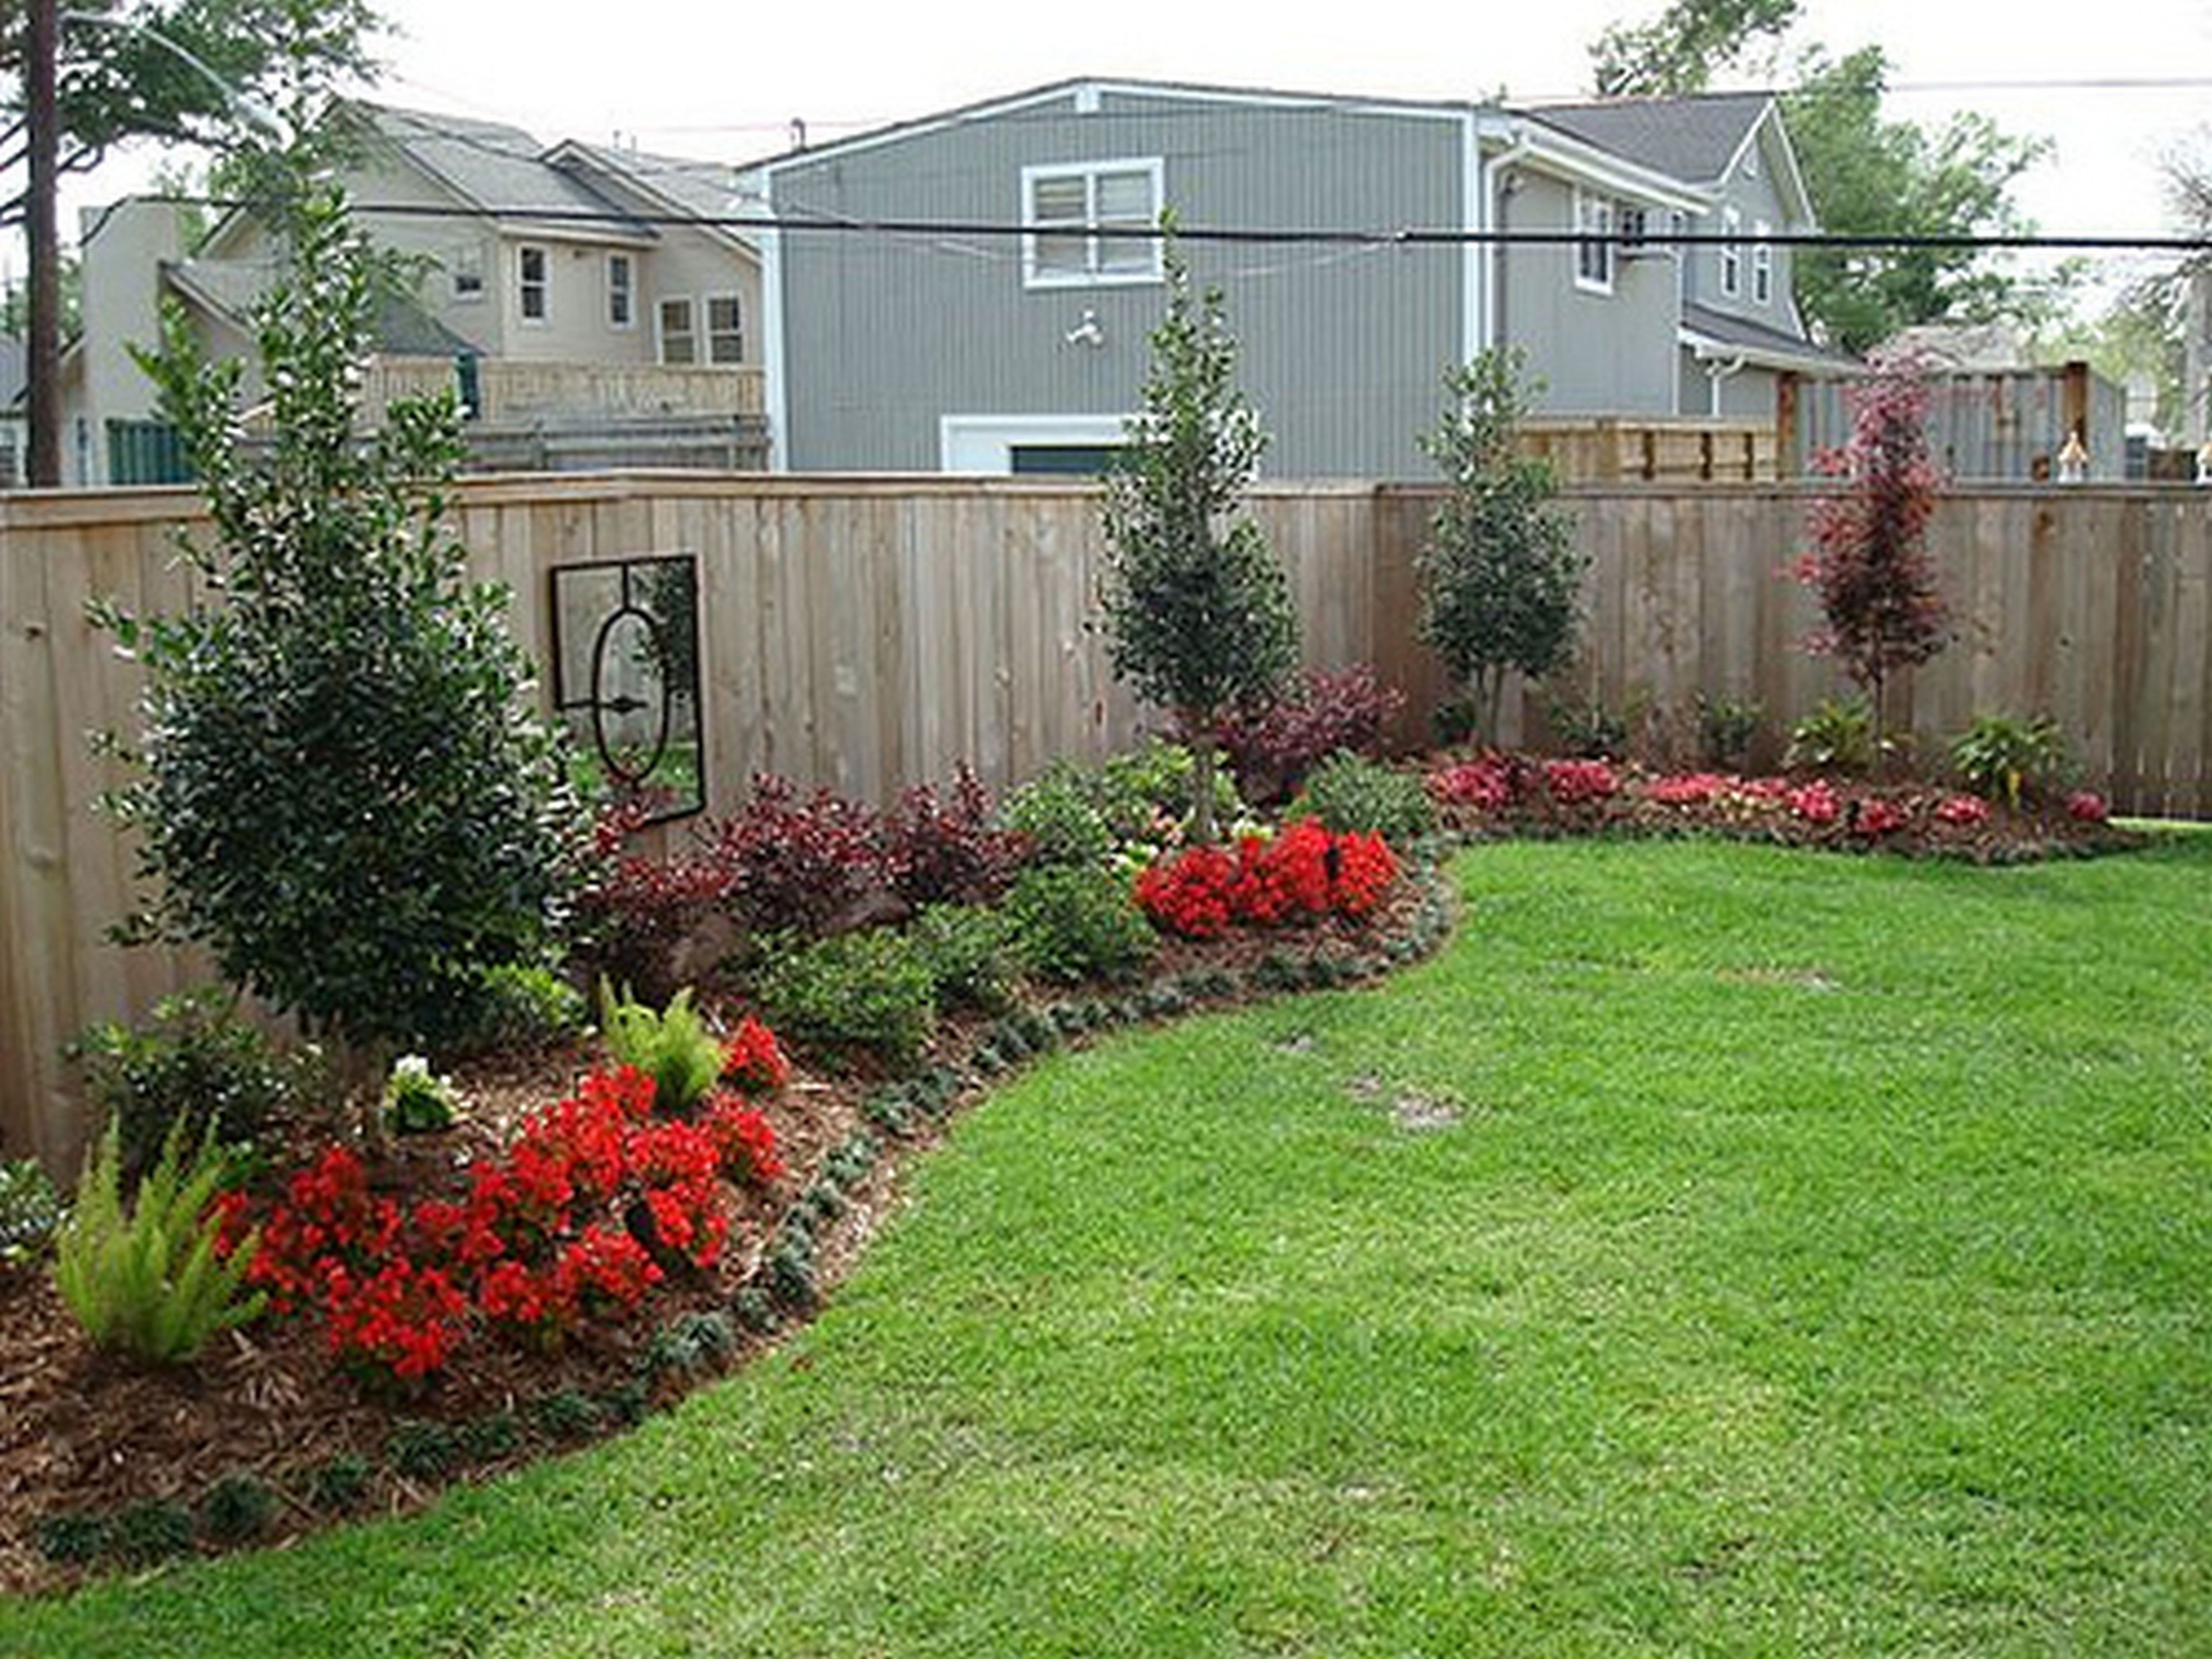 How To Diy Backyard Landscaping Ideas To Increase Outdoor Home Value with regard to 14 Clever Concepts of How to Build DIY Backyard Landscape Design